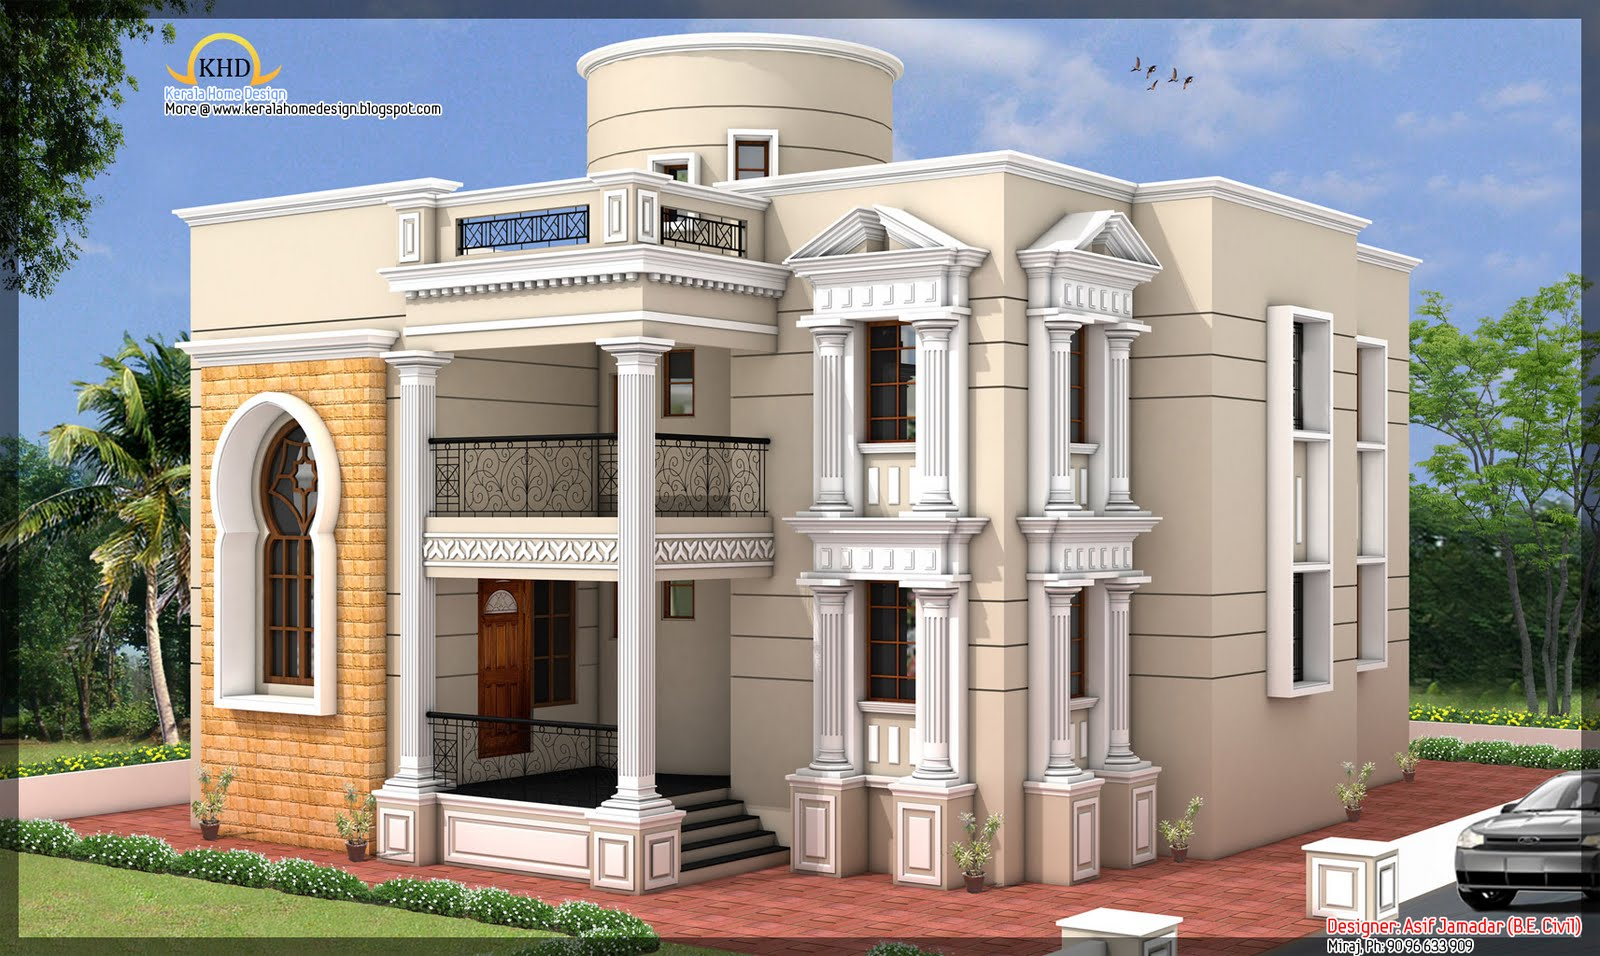 Fabulous Home House Design 1600 x 956 · 282 kB · jpeg